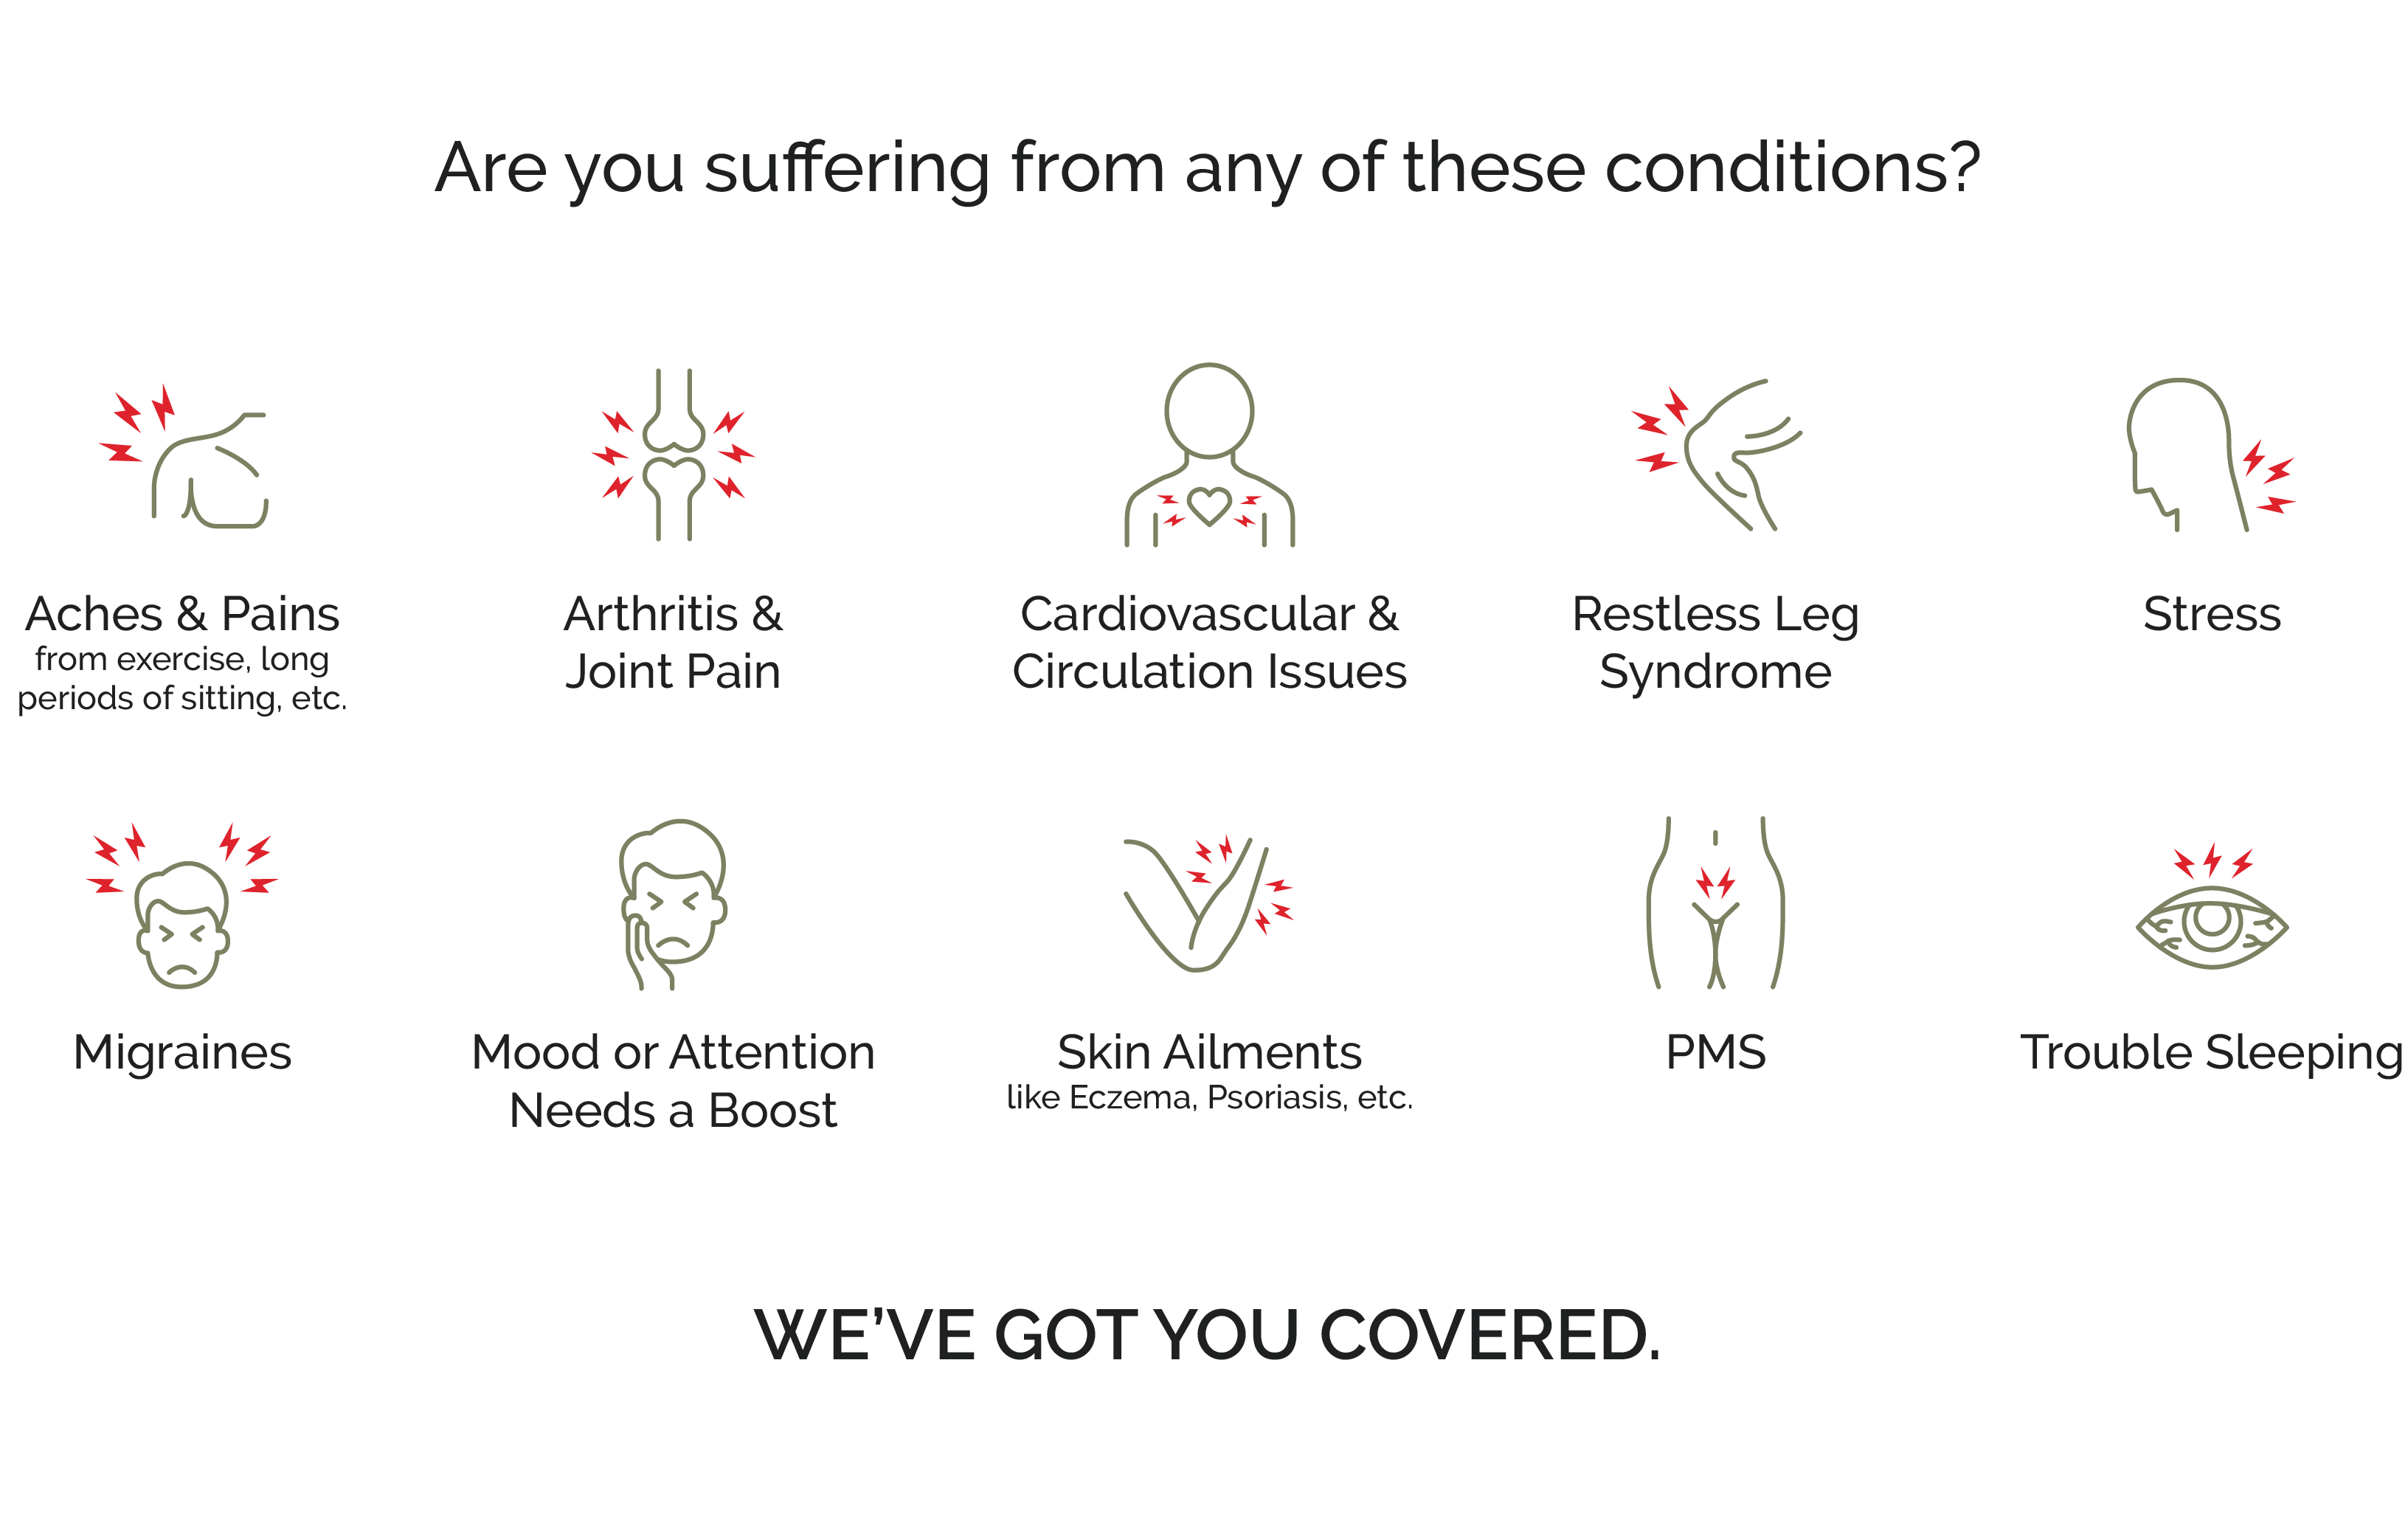 Are you suffering from any of these conditions? Aches & Pains, Arthritis & Joint Pain, Cardiovascular & Circulation Issues, Restless Leg Syndrome, Stress, Migraines, Mood or Attention needs a boost, Skin Ailments, PMS, Trouble Sleeping. We've got you covered